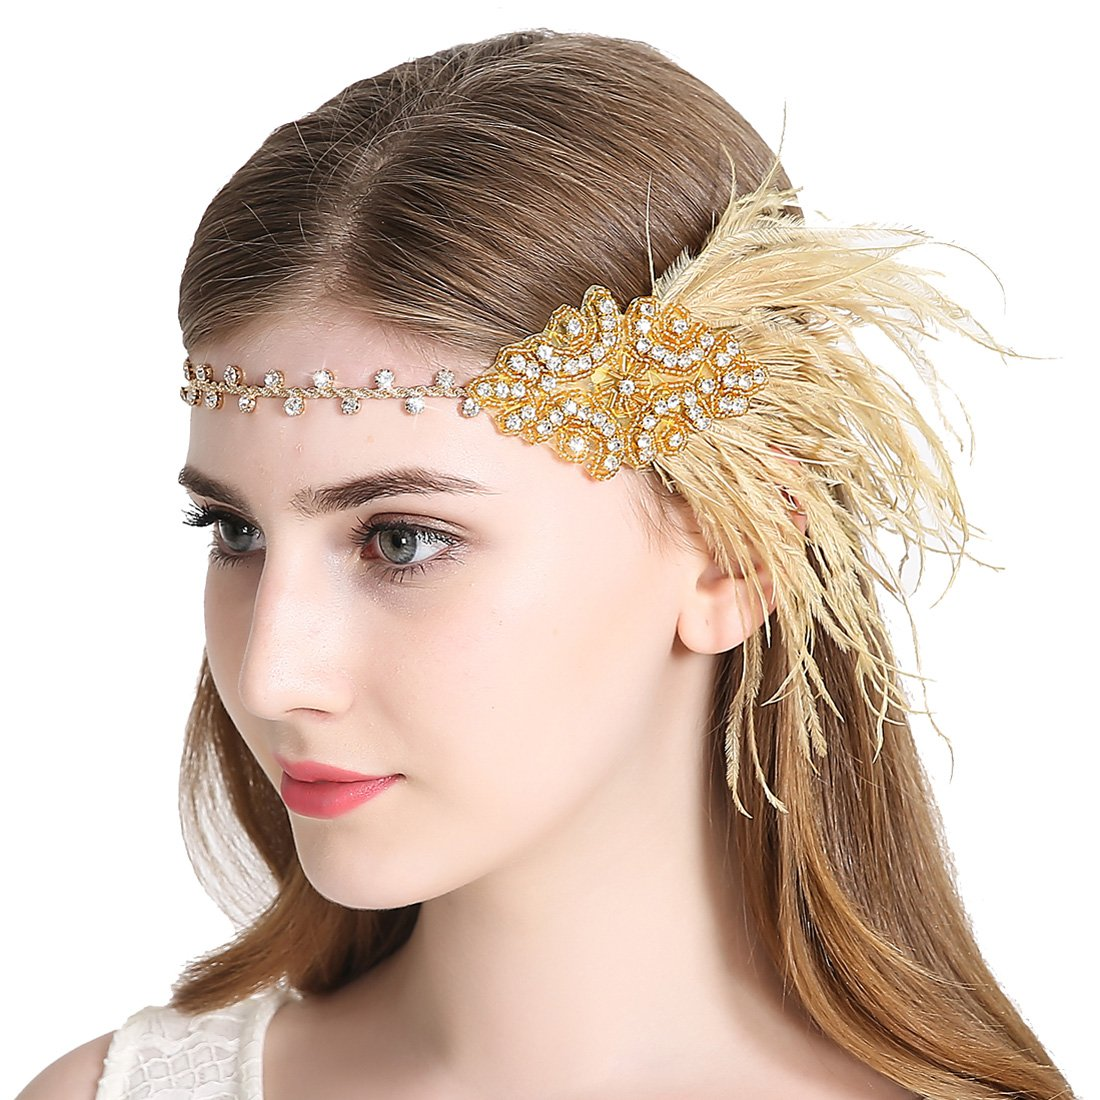 Vintage Flapper Headband 1920s Art Deco Gatsby Feather Headpiece For Women Plume Hair accessories Gold